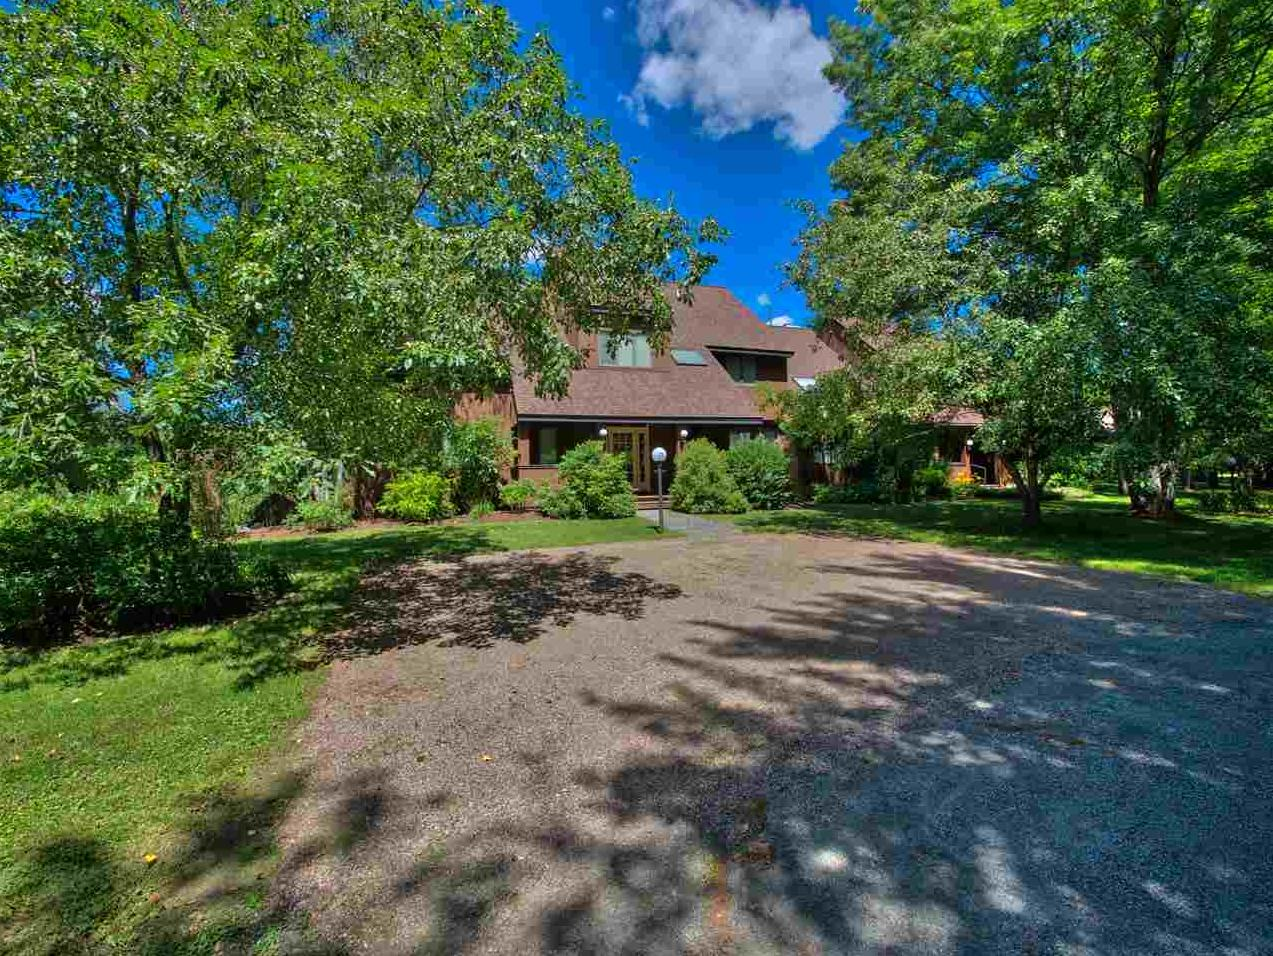 Photo of 251 Luce Hill Road Stowe VT 05672